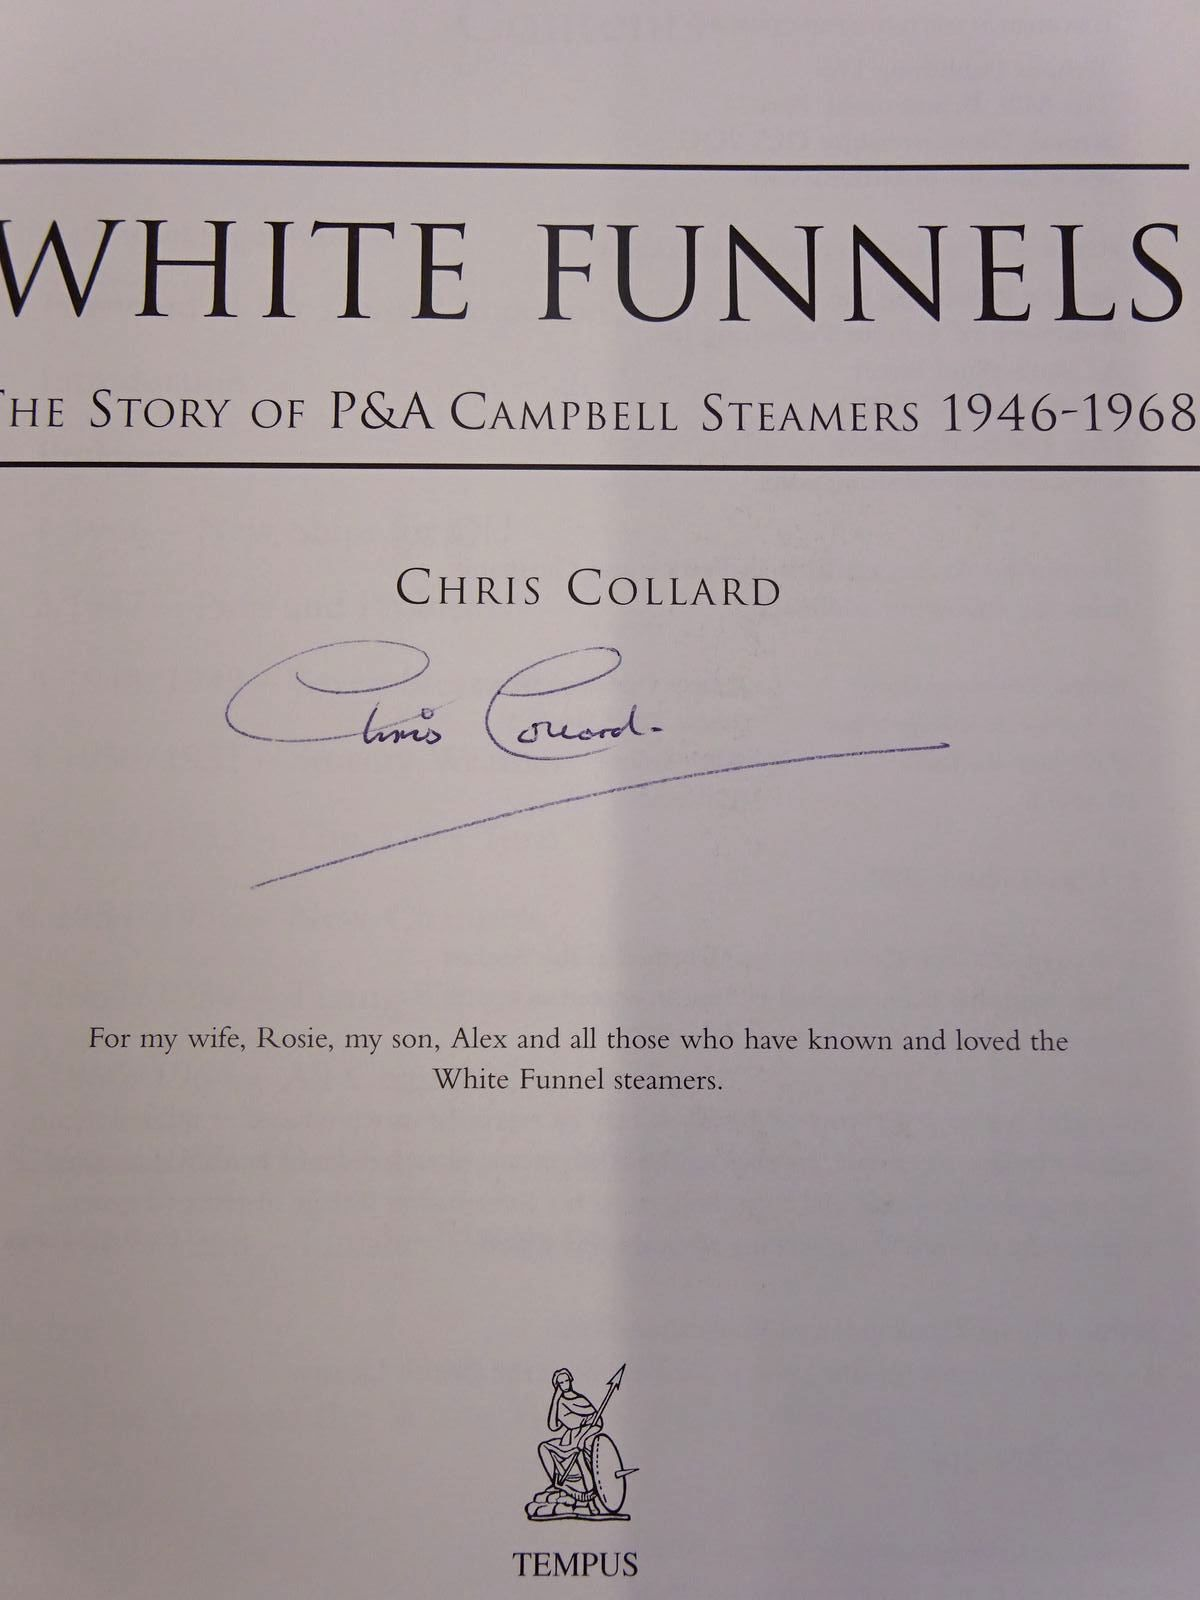 Photo of WHITE FUNNELS: THE STORY OF THE P&A CAMPBELL STEAMERS 1946-1968 written by Collard, Chris published by Tempus (STOCK CODE: 2128152)  for sale by Stella & Rose's Books